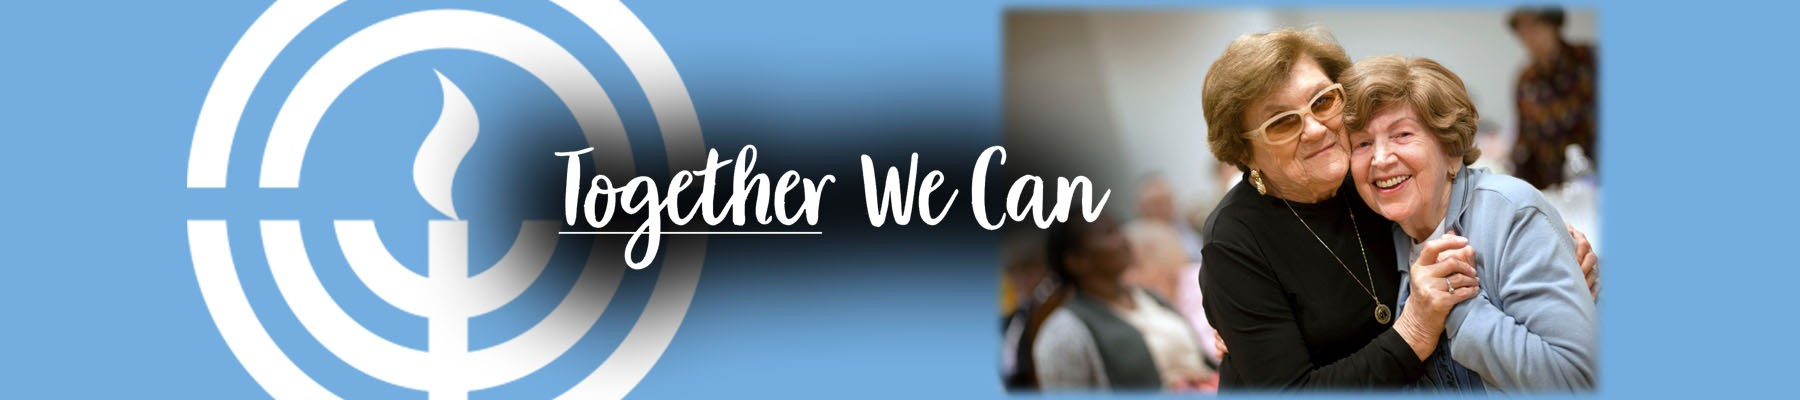 Together We Can - Campaign Slider.jpg